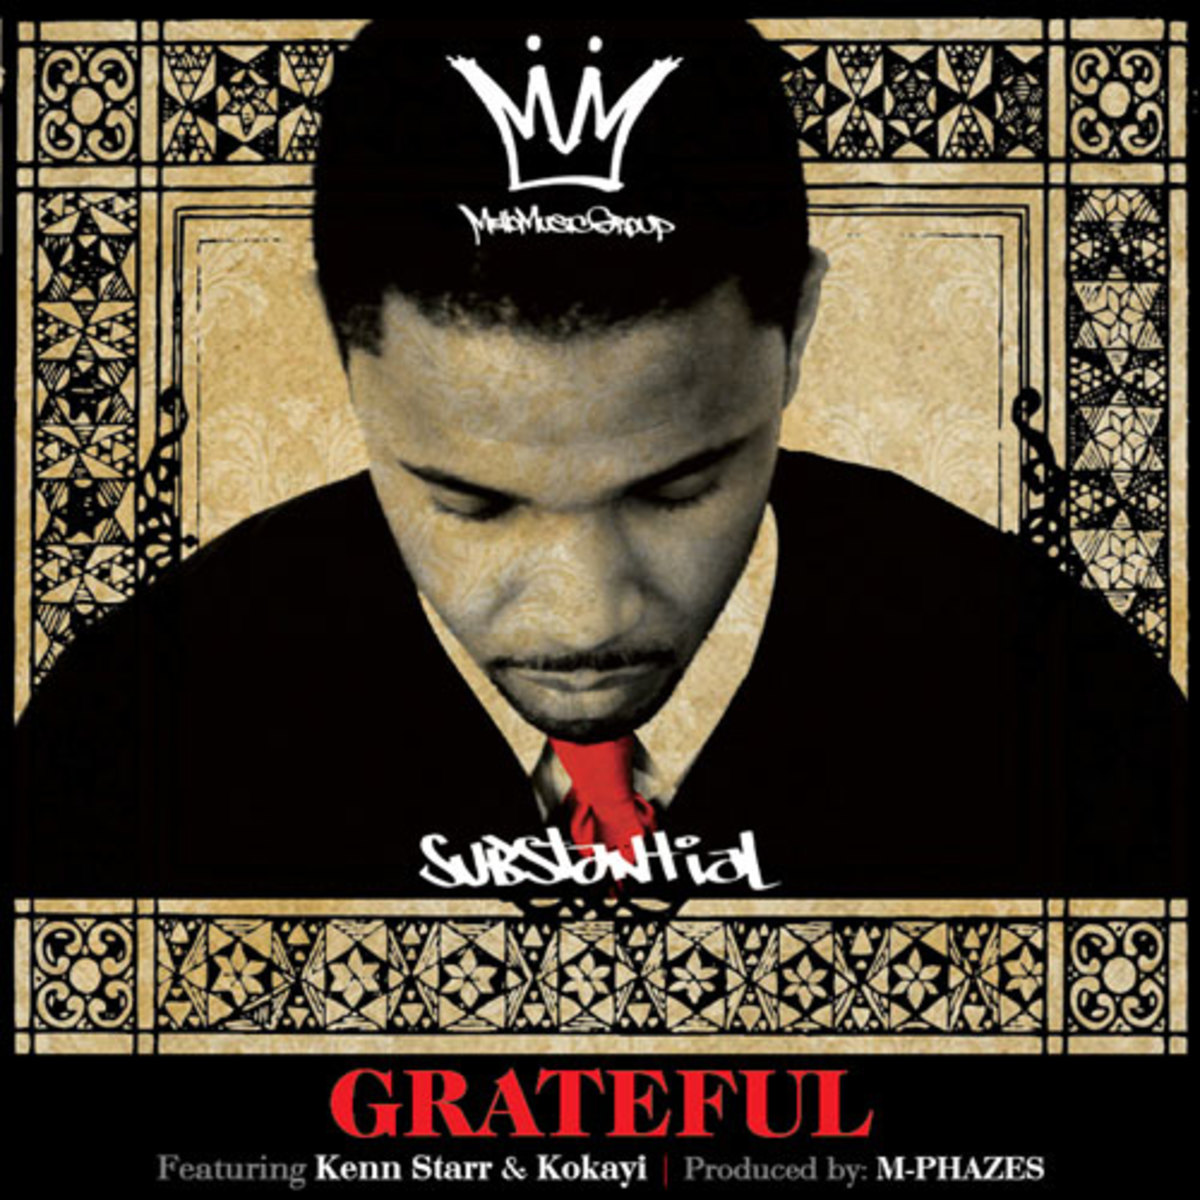 substantial-grateful.jpg